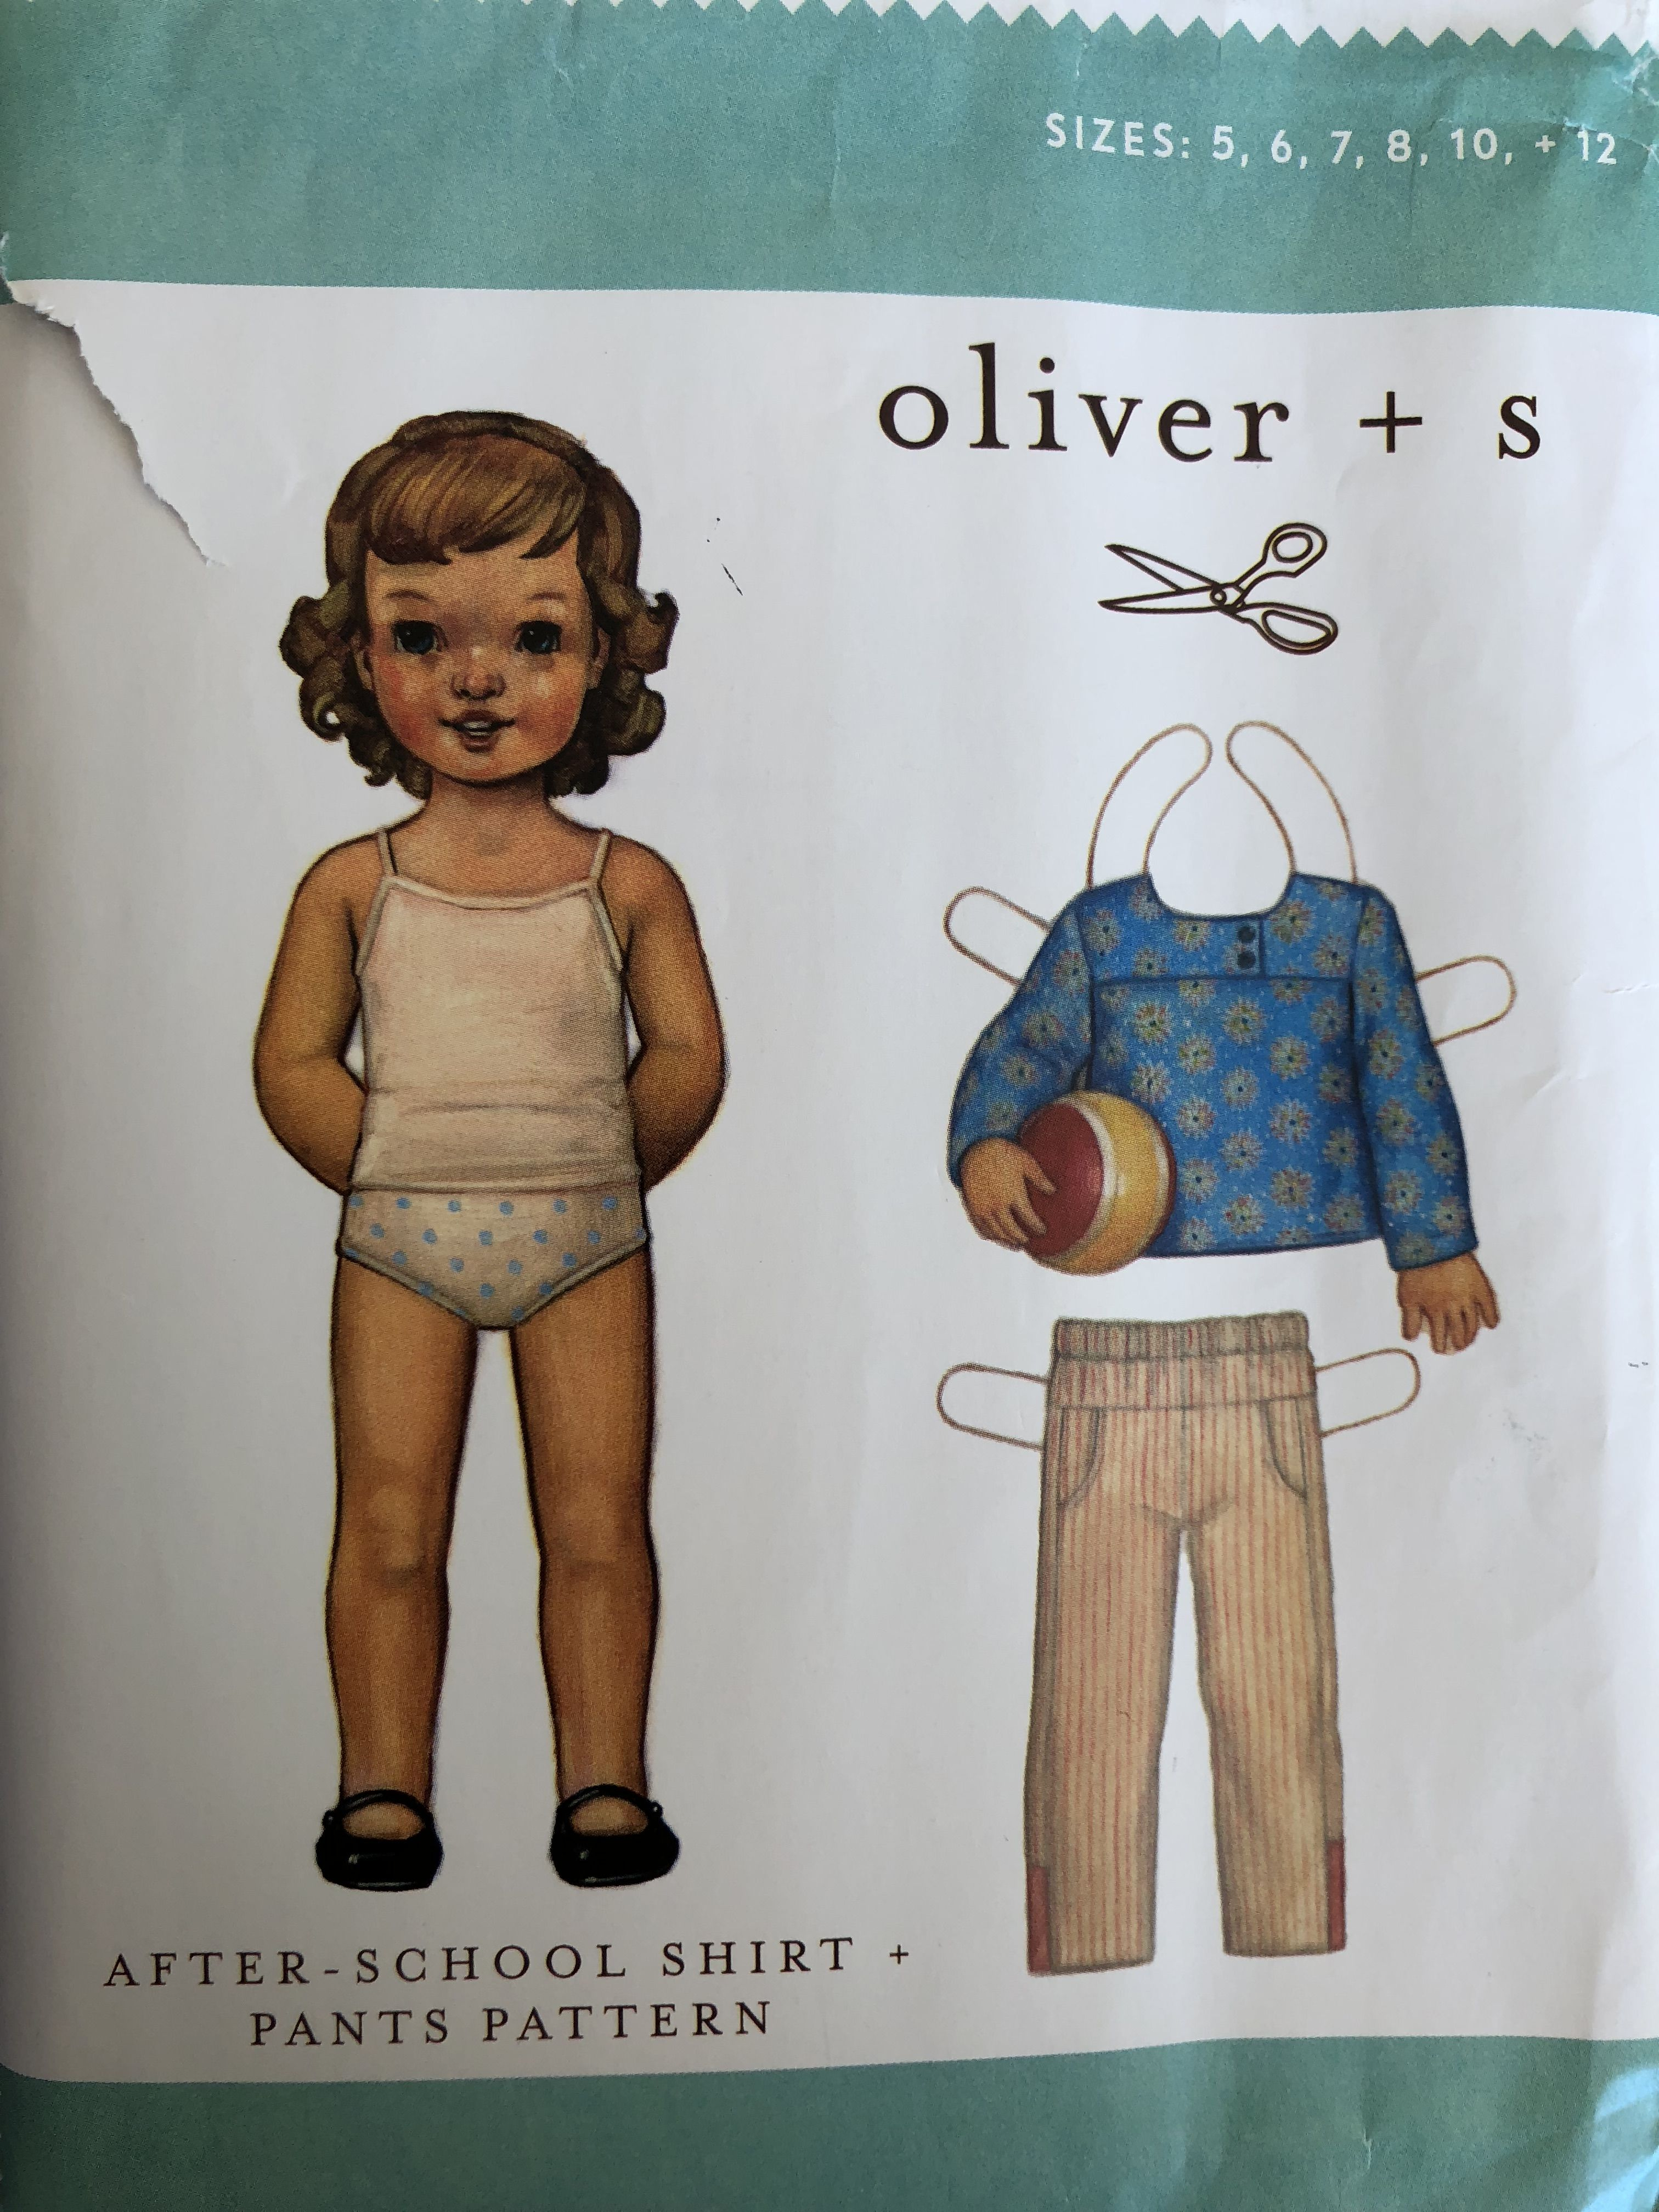 6 12 NEW After School Shirt /& Pants Pattern 7 10 8 Oliver Sizes: 5